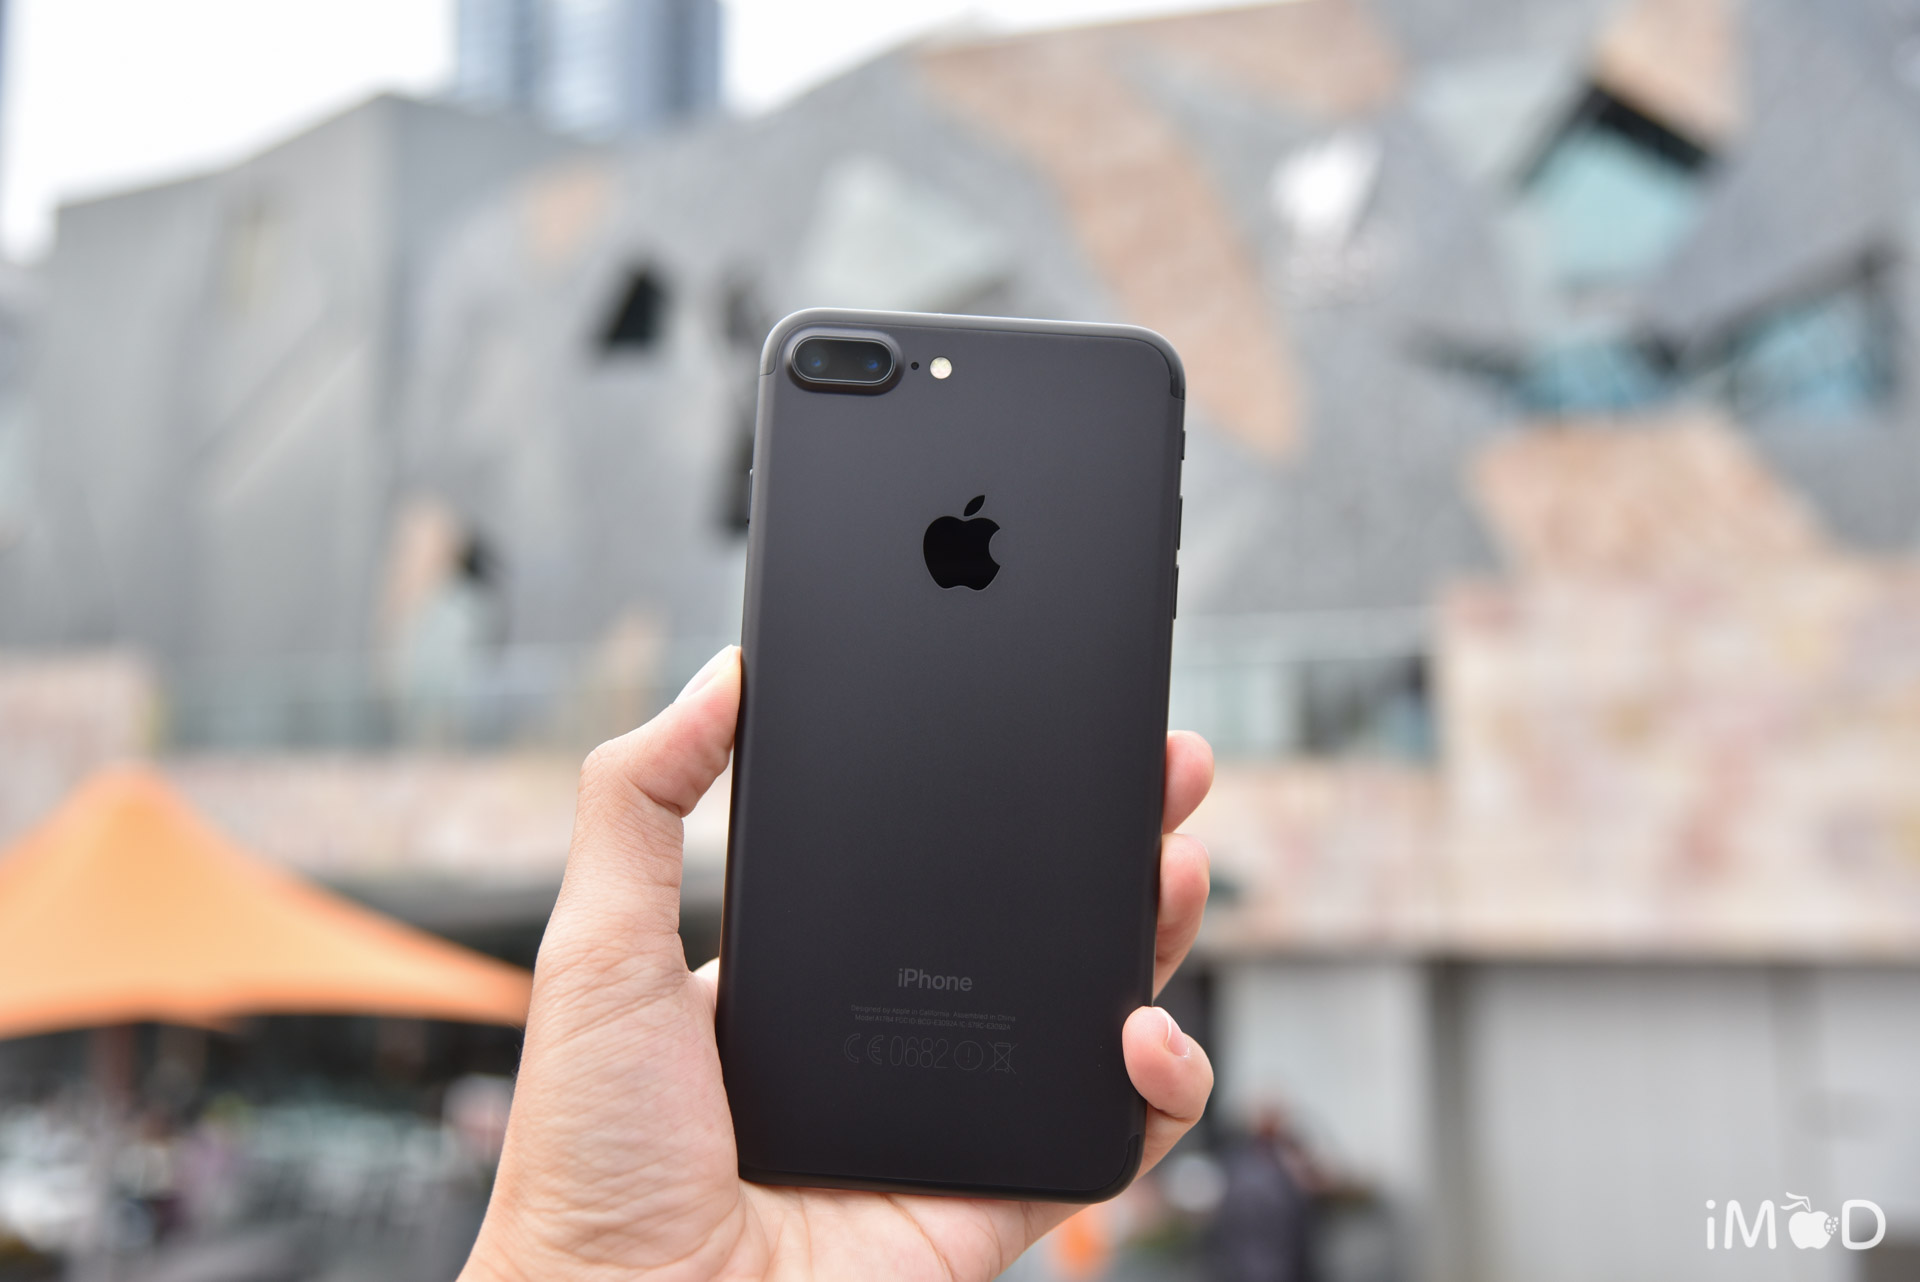 iphone 7 plus black-1